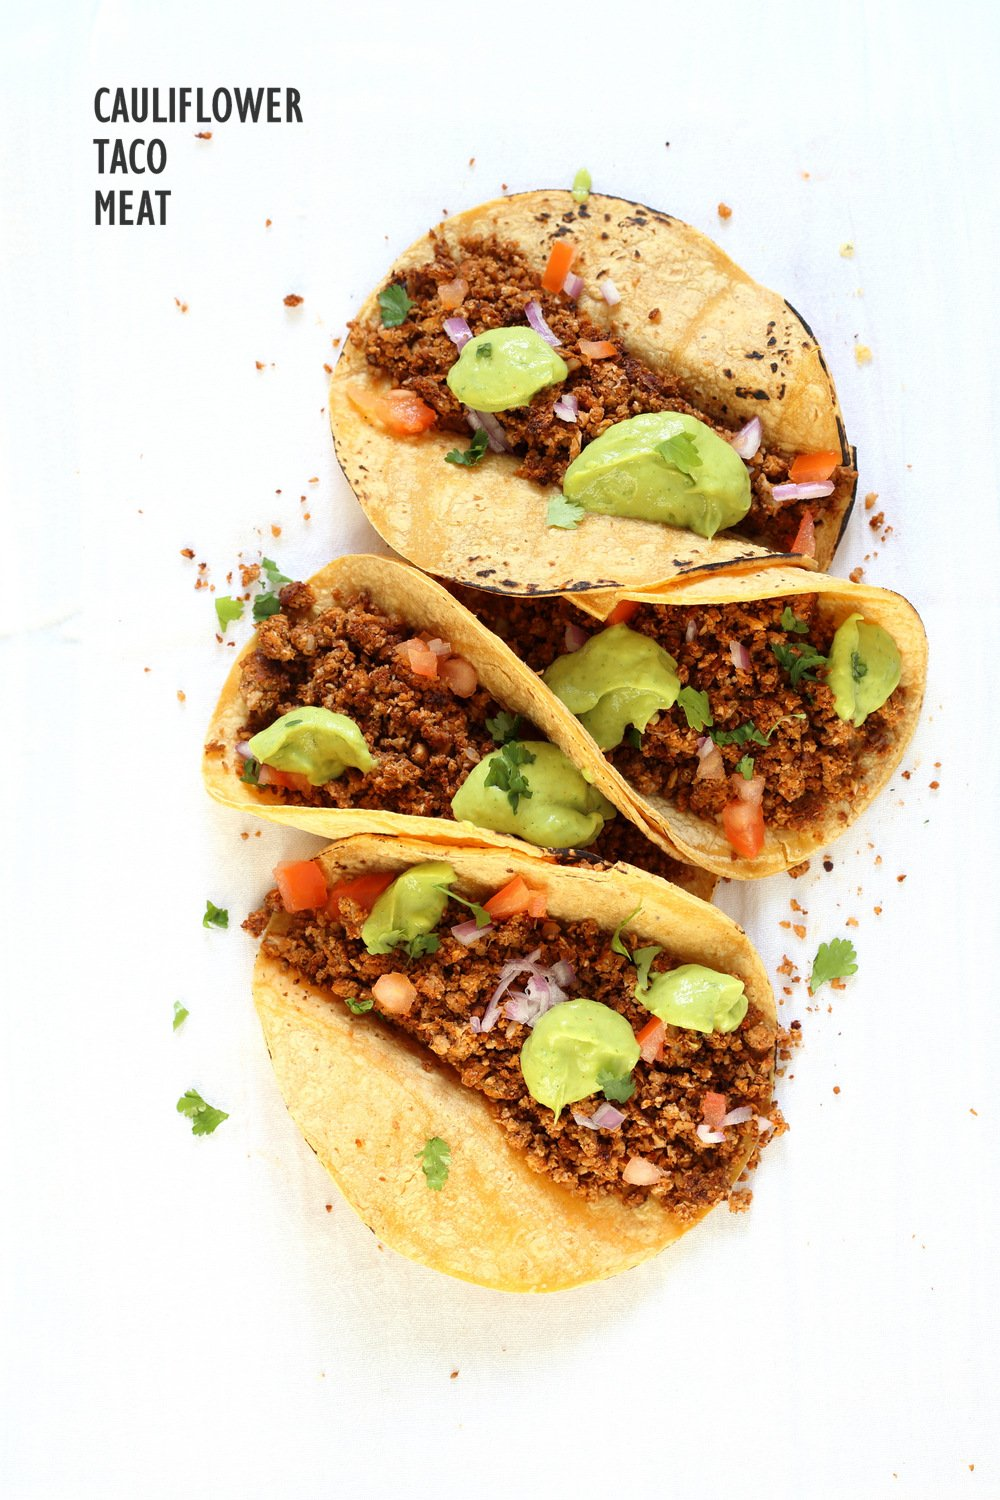 Cauliflower Taco Meat. Easy No Skillet Needed. 1 Pot Cauliflower Walnut Crumble. Use in tacos, wraps, burrito, nachos, salads! #Vegan #Glutenfree #soyfree #Recipe #Veganricha. Can be #nutfree | VeganRicha.com